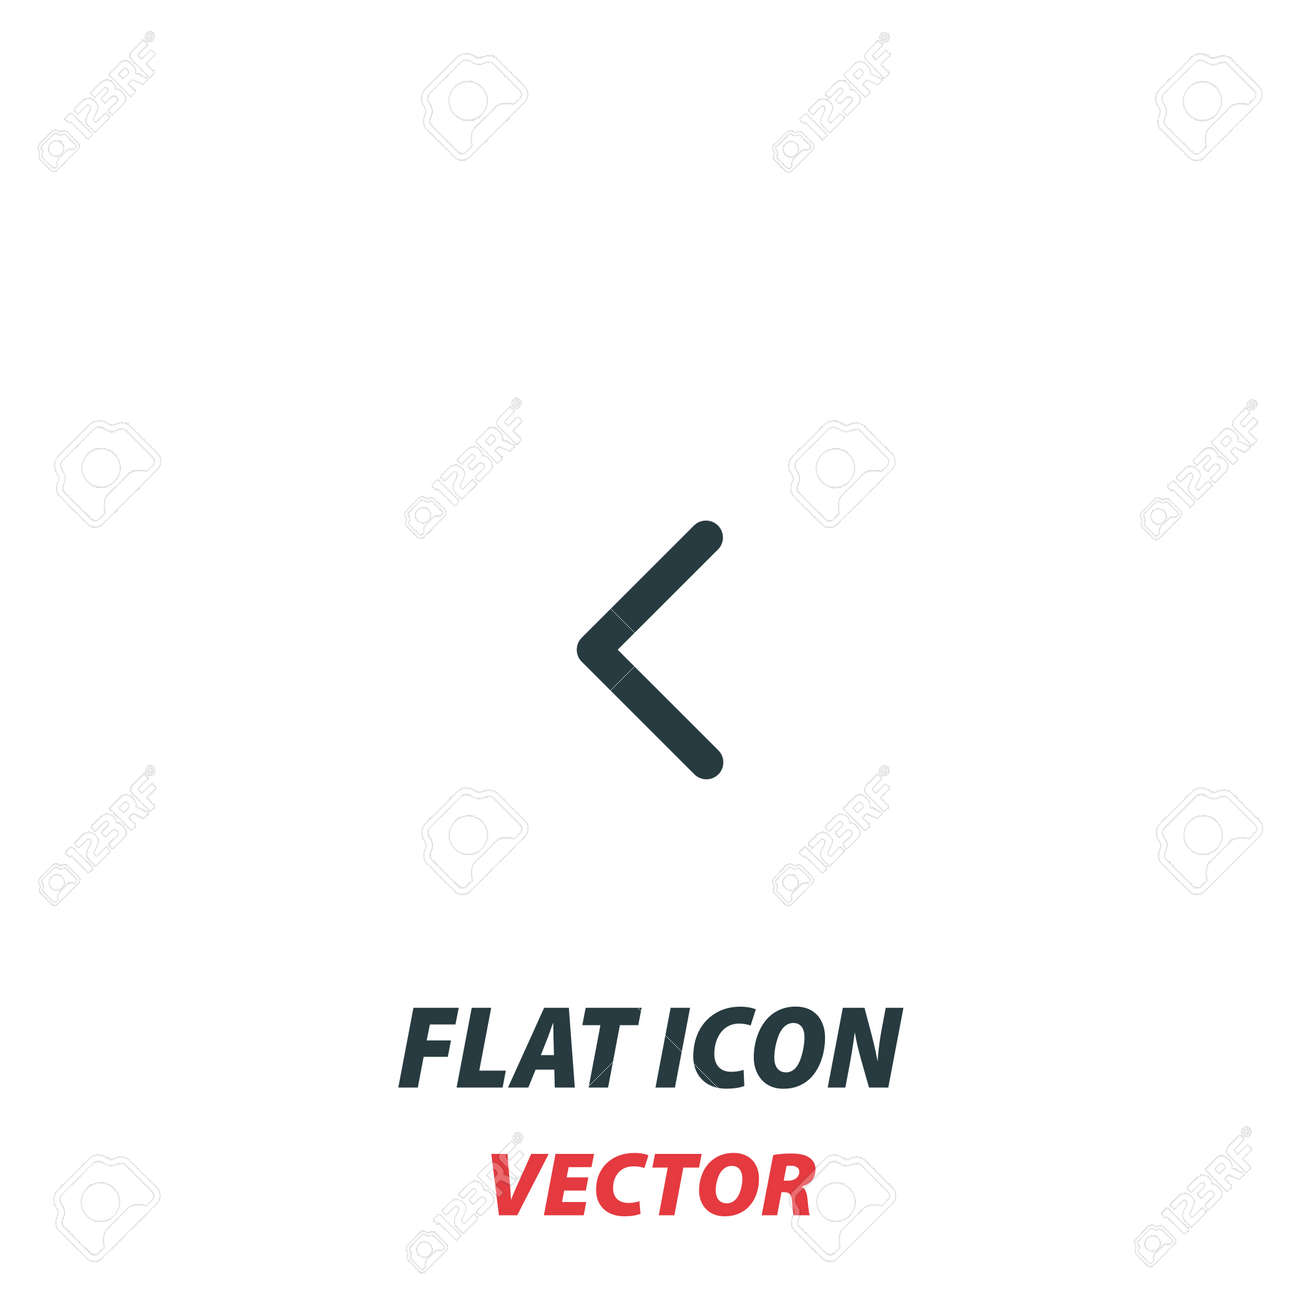 Left chevron icon in a flat style. Vector illustration pictogram on white background. Isolated symbol suitable for mobile concept, web apps, infographics, interface and apps design. - 159915916